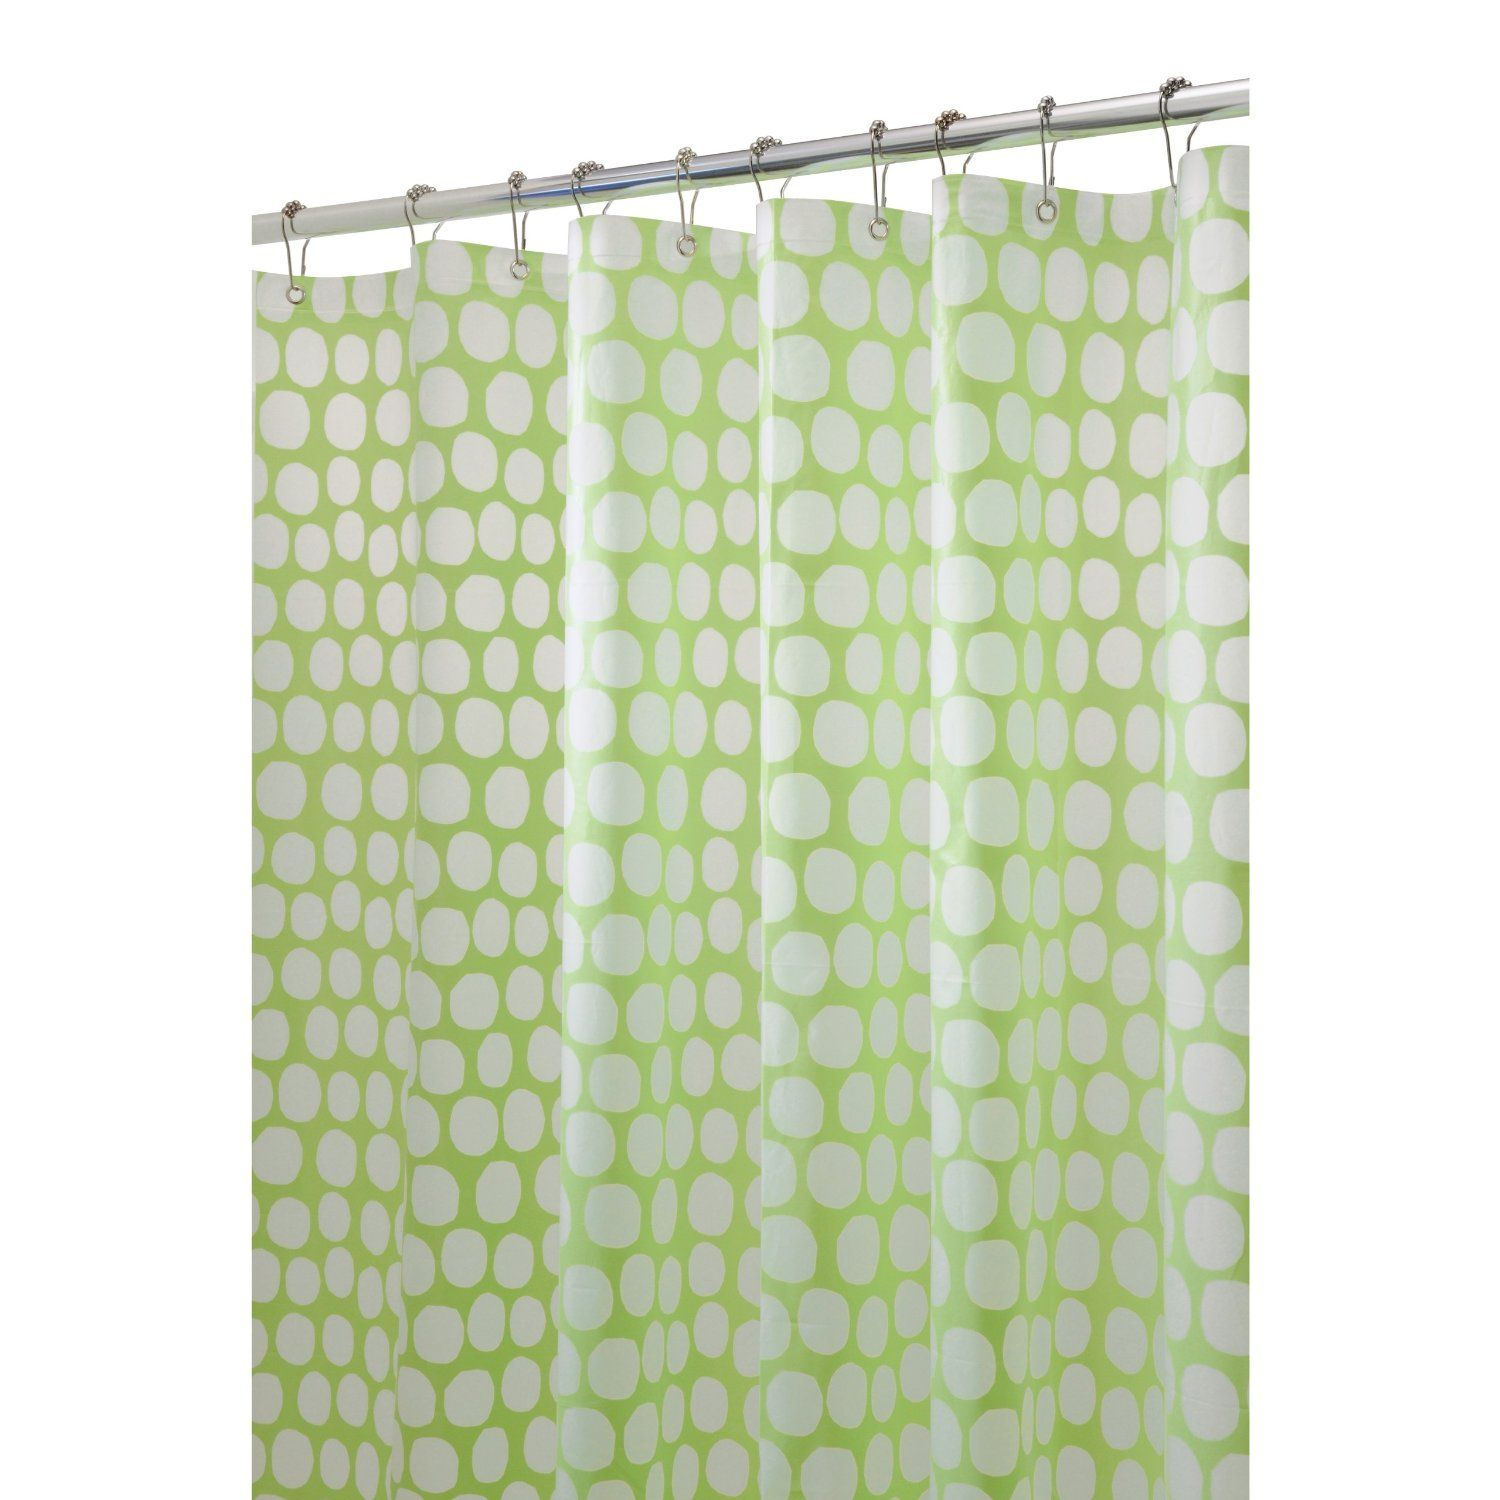 Lime Green Shower Curtain Style And Color Green Shower Curtains Retro Shower Curtain Shower Curtain